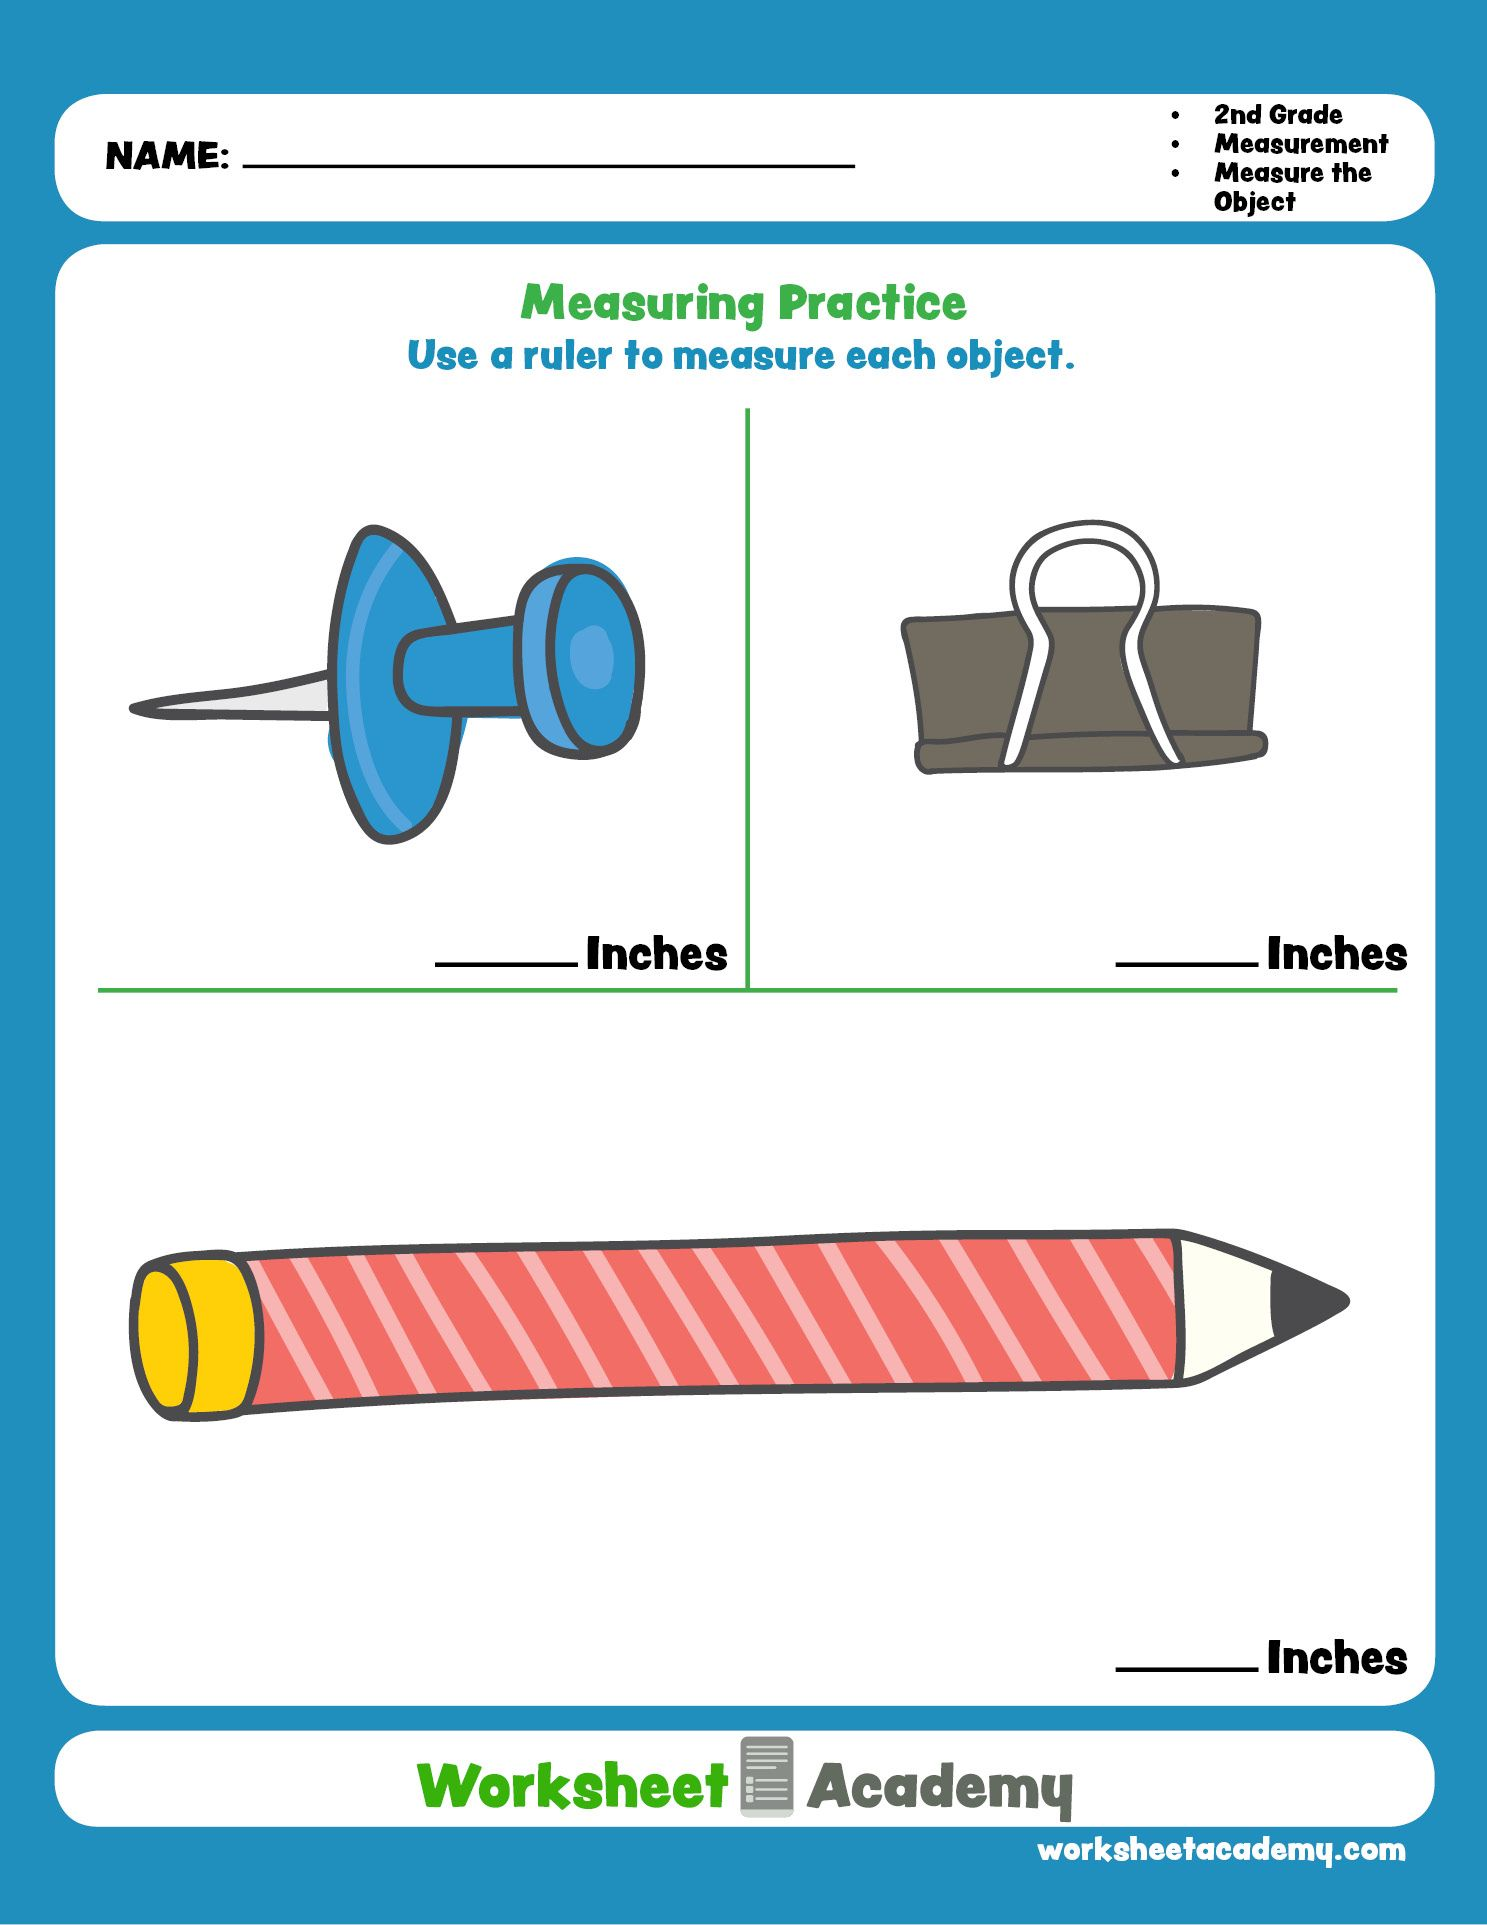 hight resolution of Measuring Practice: Inches   Homeschool worksheets